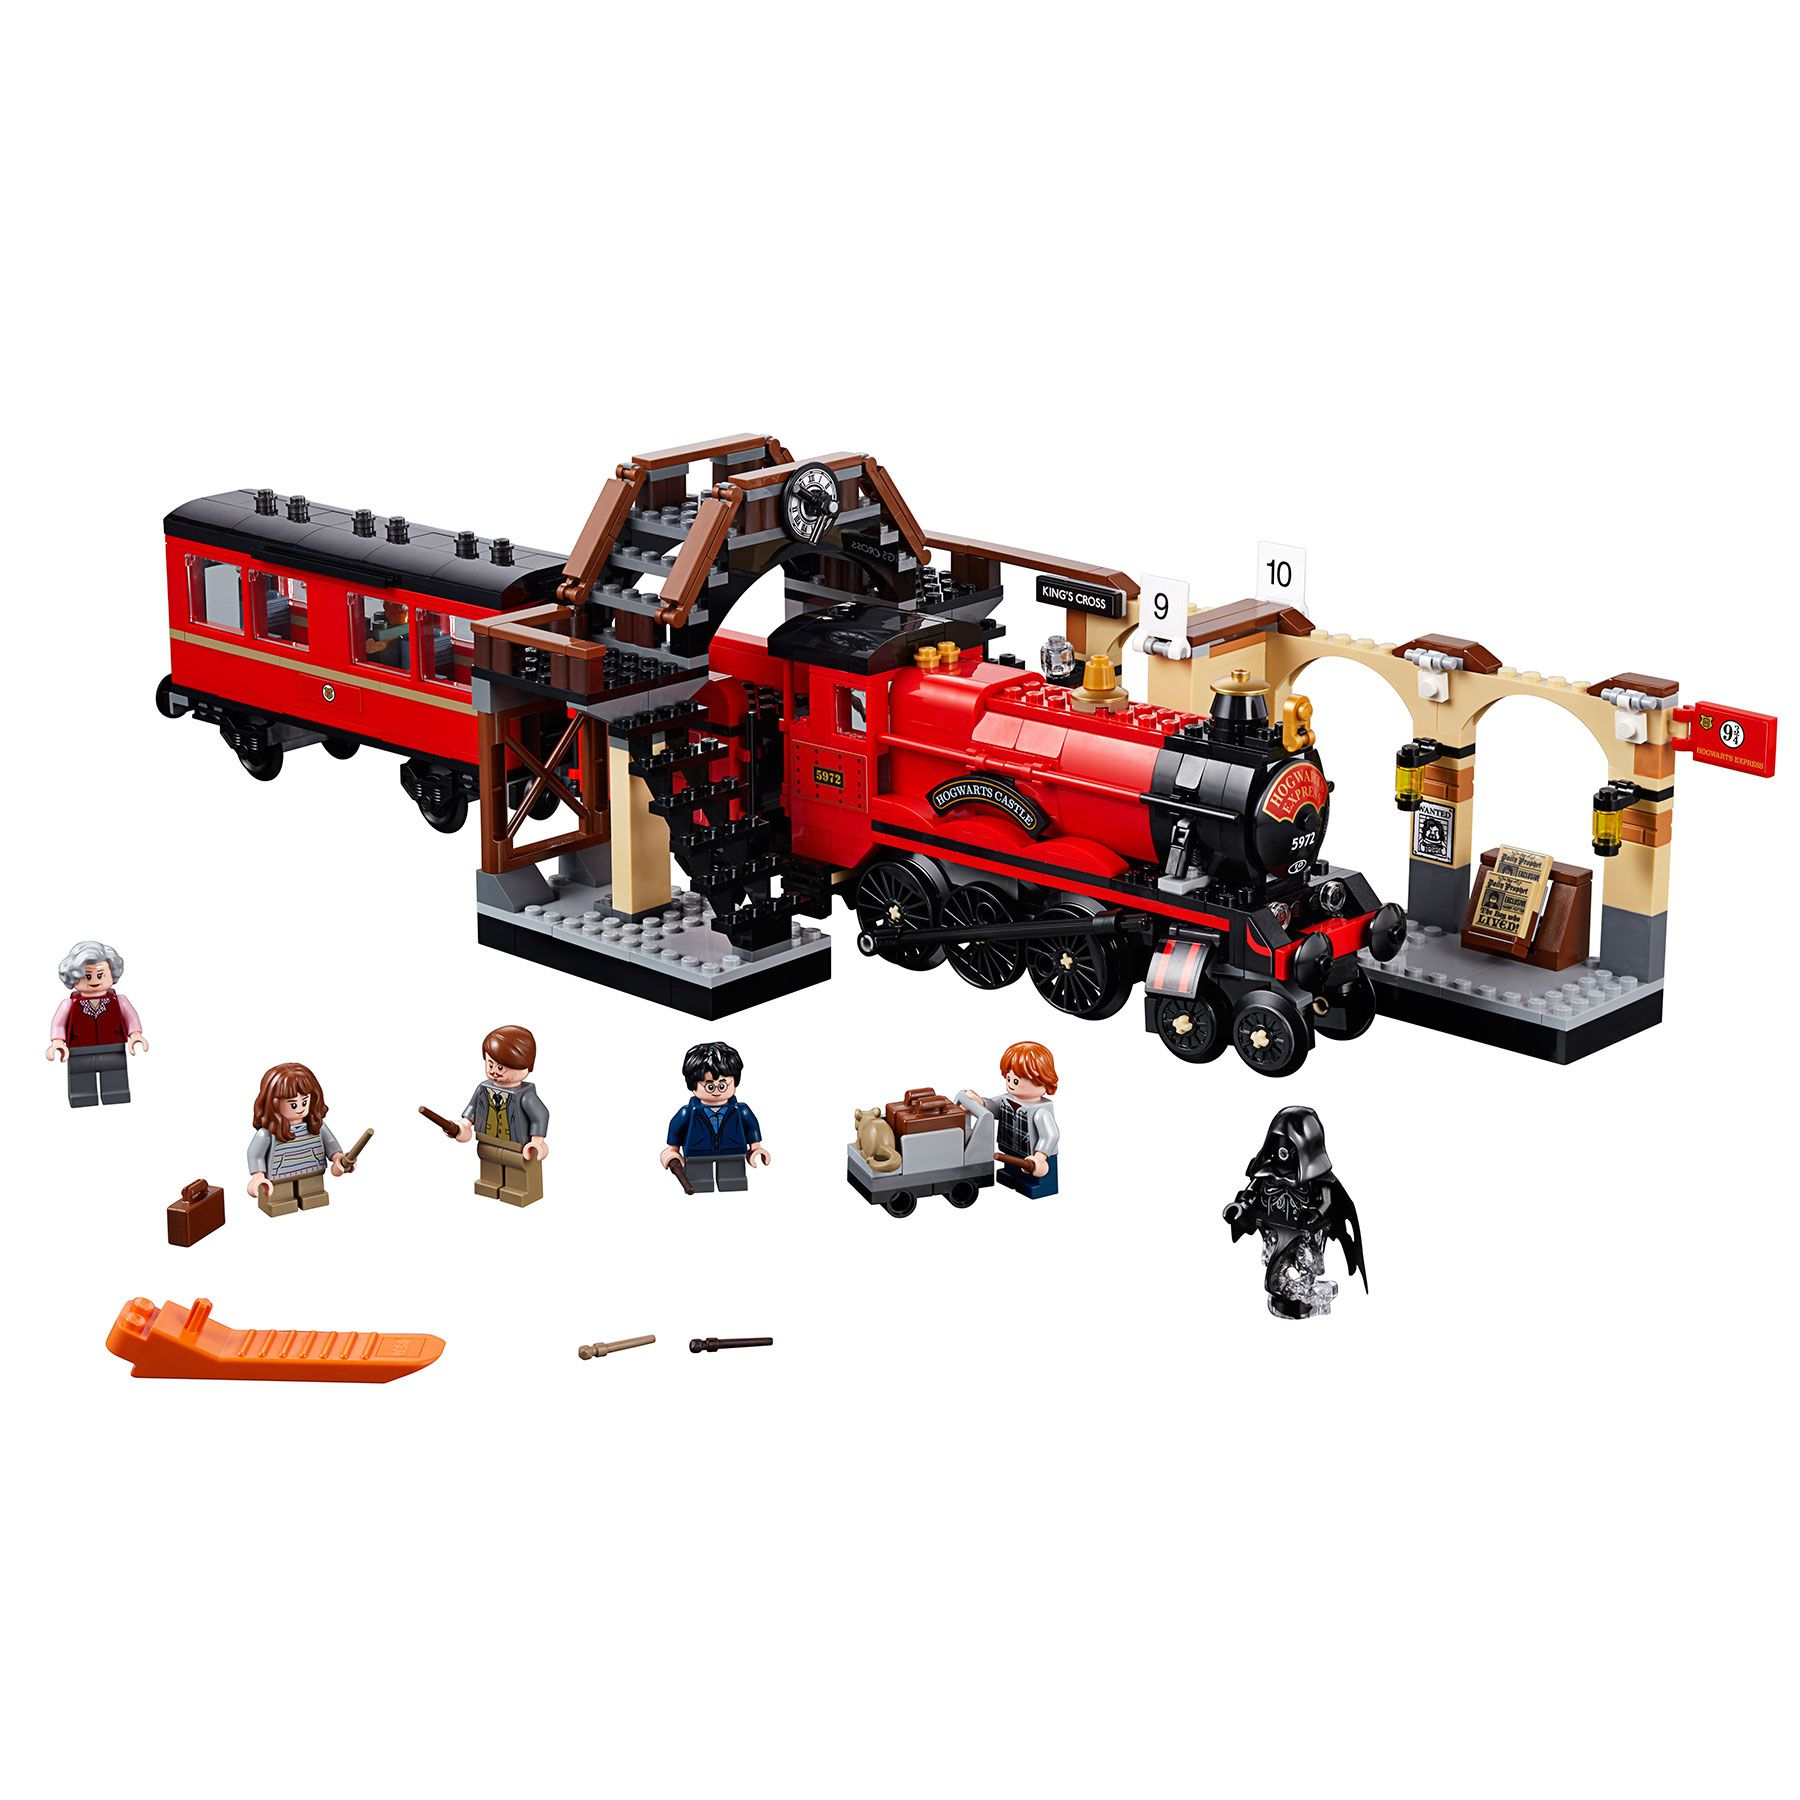 LEGO Harry Potter 75955 Hogwarts™ Express LEGO_Harry Potter_75955_The_Hogwarts_Express.jpg